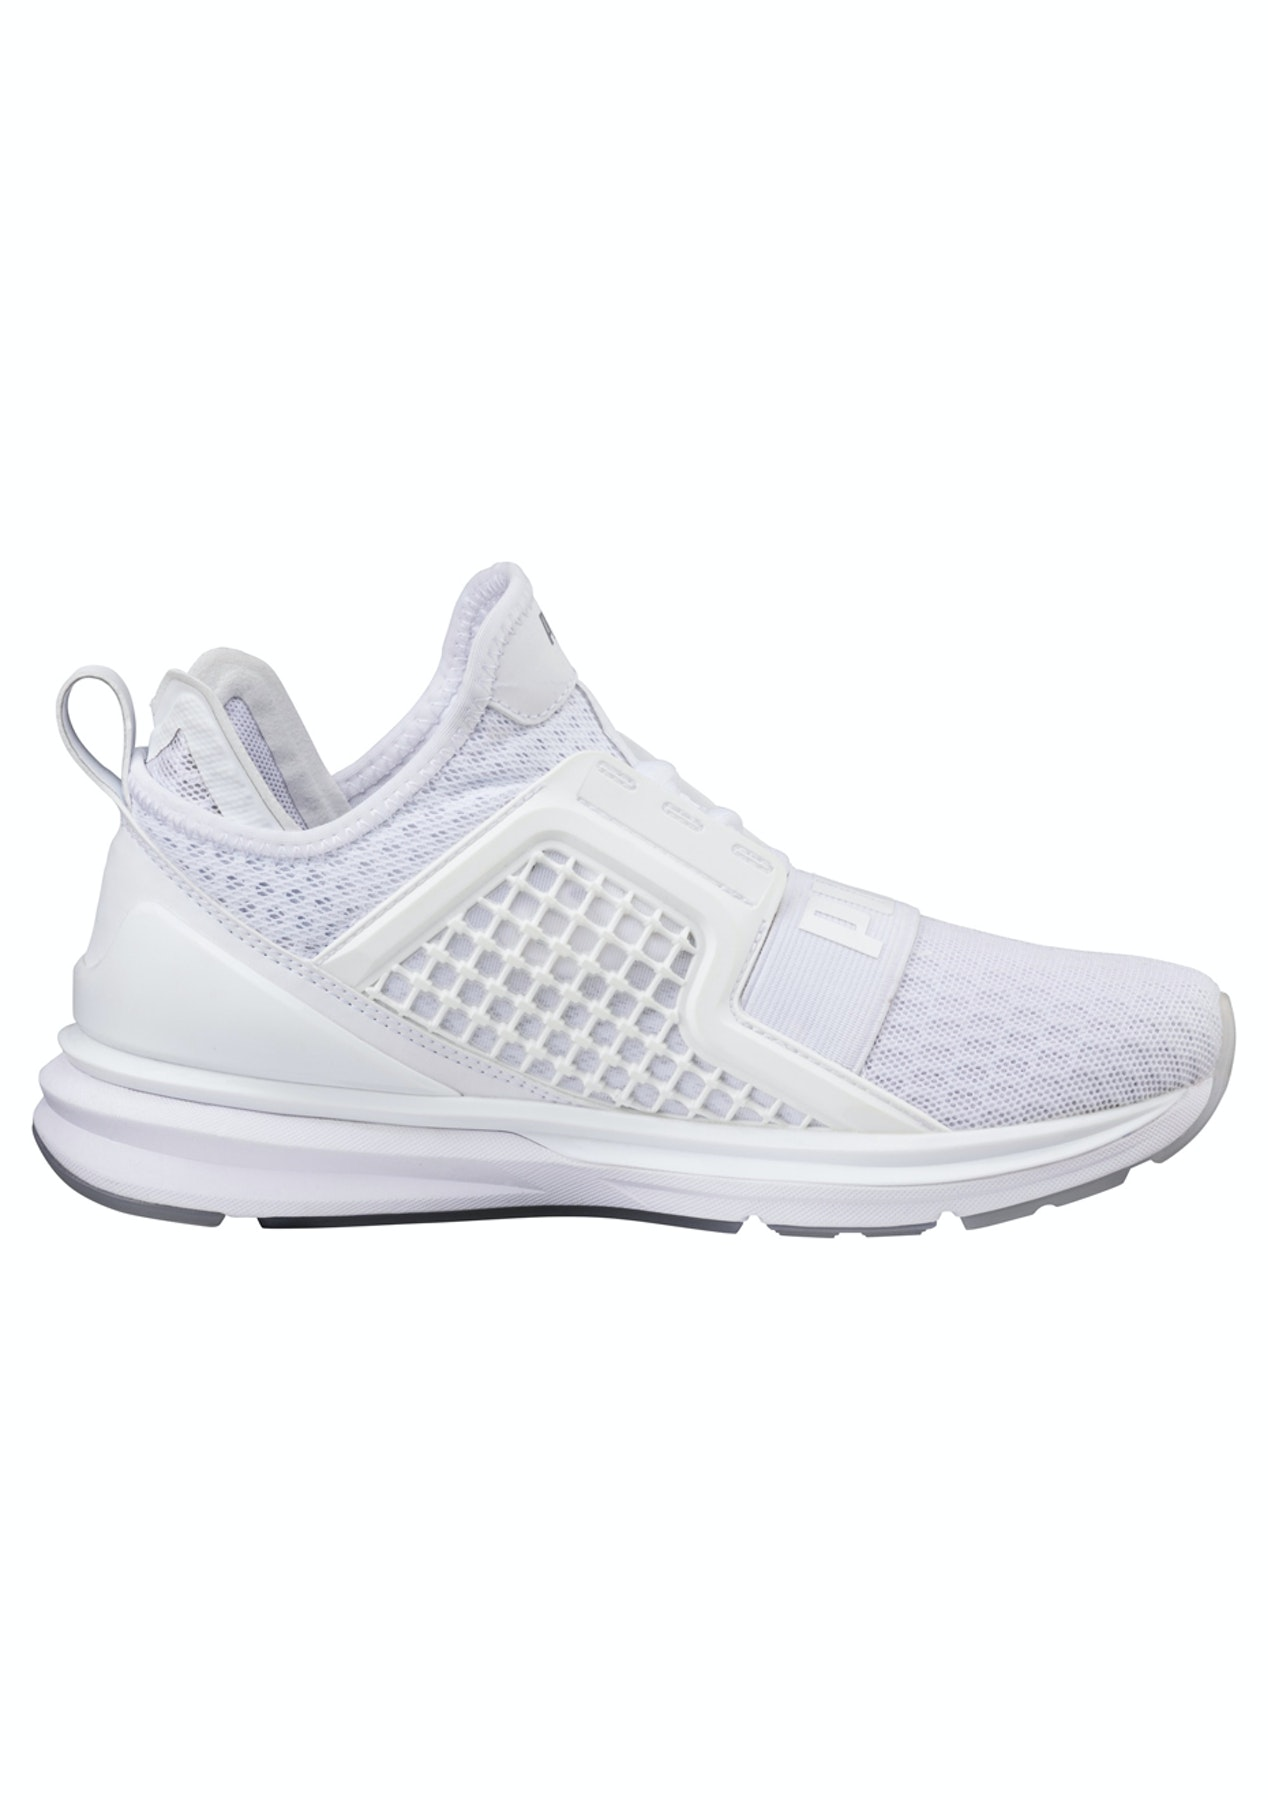 Puma Womens - Ignite Limitless White - Free Shipping Activewear Outlet -  Onceit 763673c03